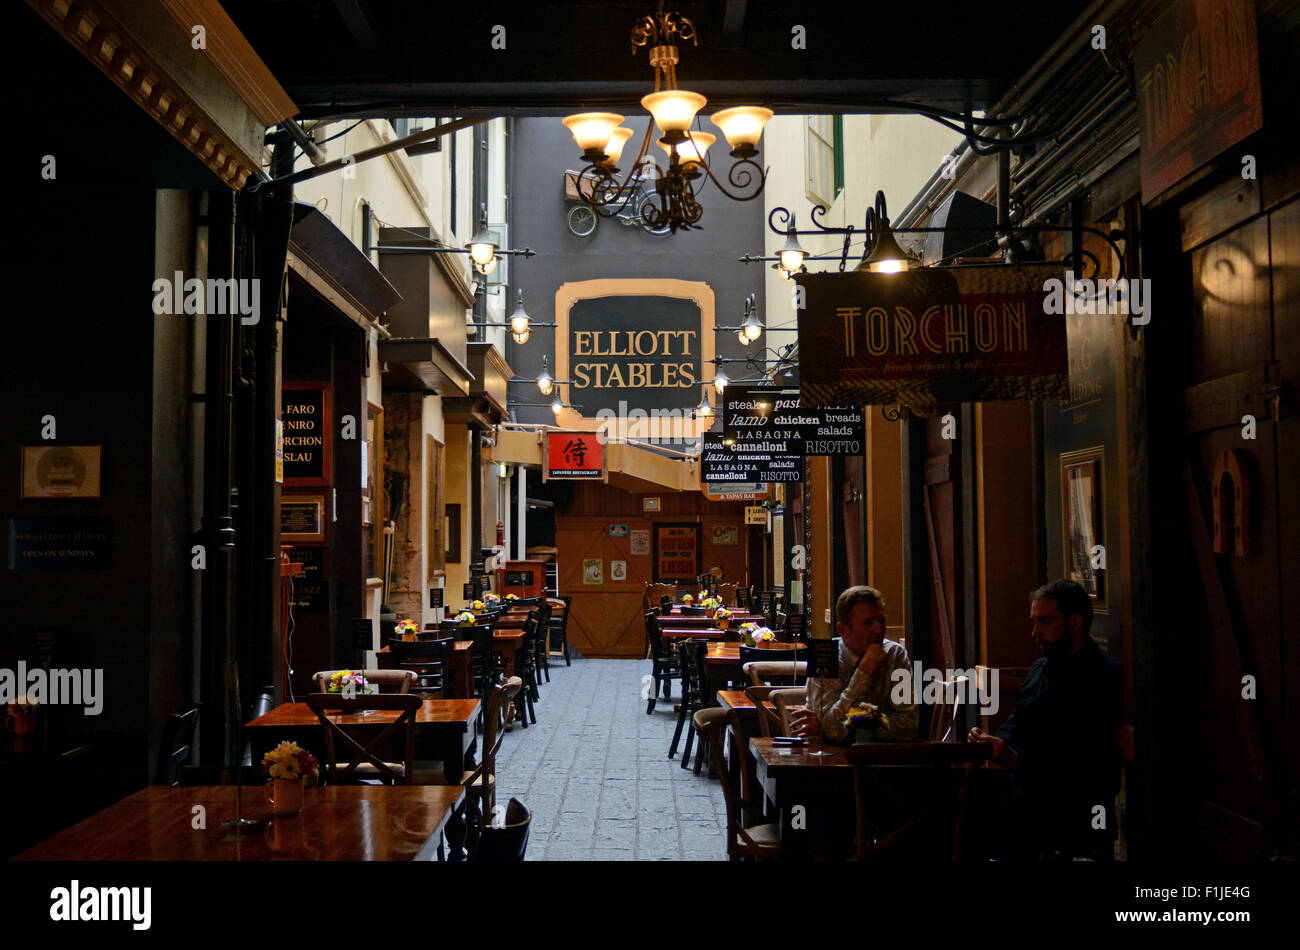 two men drinking pub stock photos two men drinking pub stock images alamy. Black Bedroom Furniture Sets. Home Design Ideas